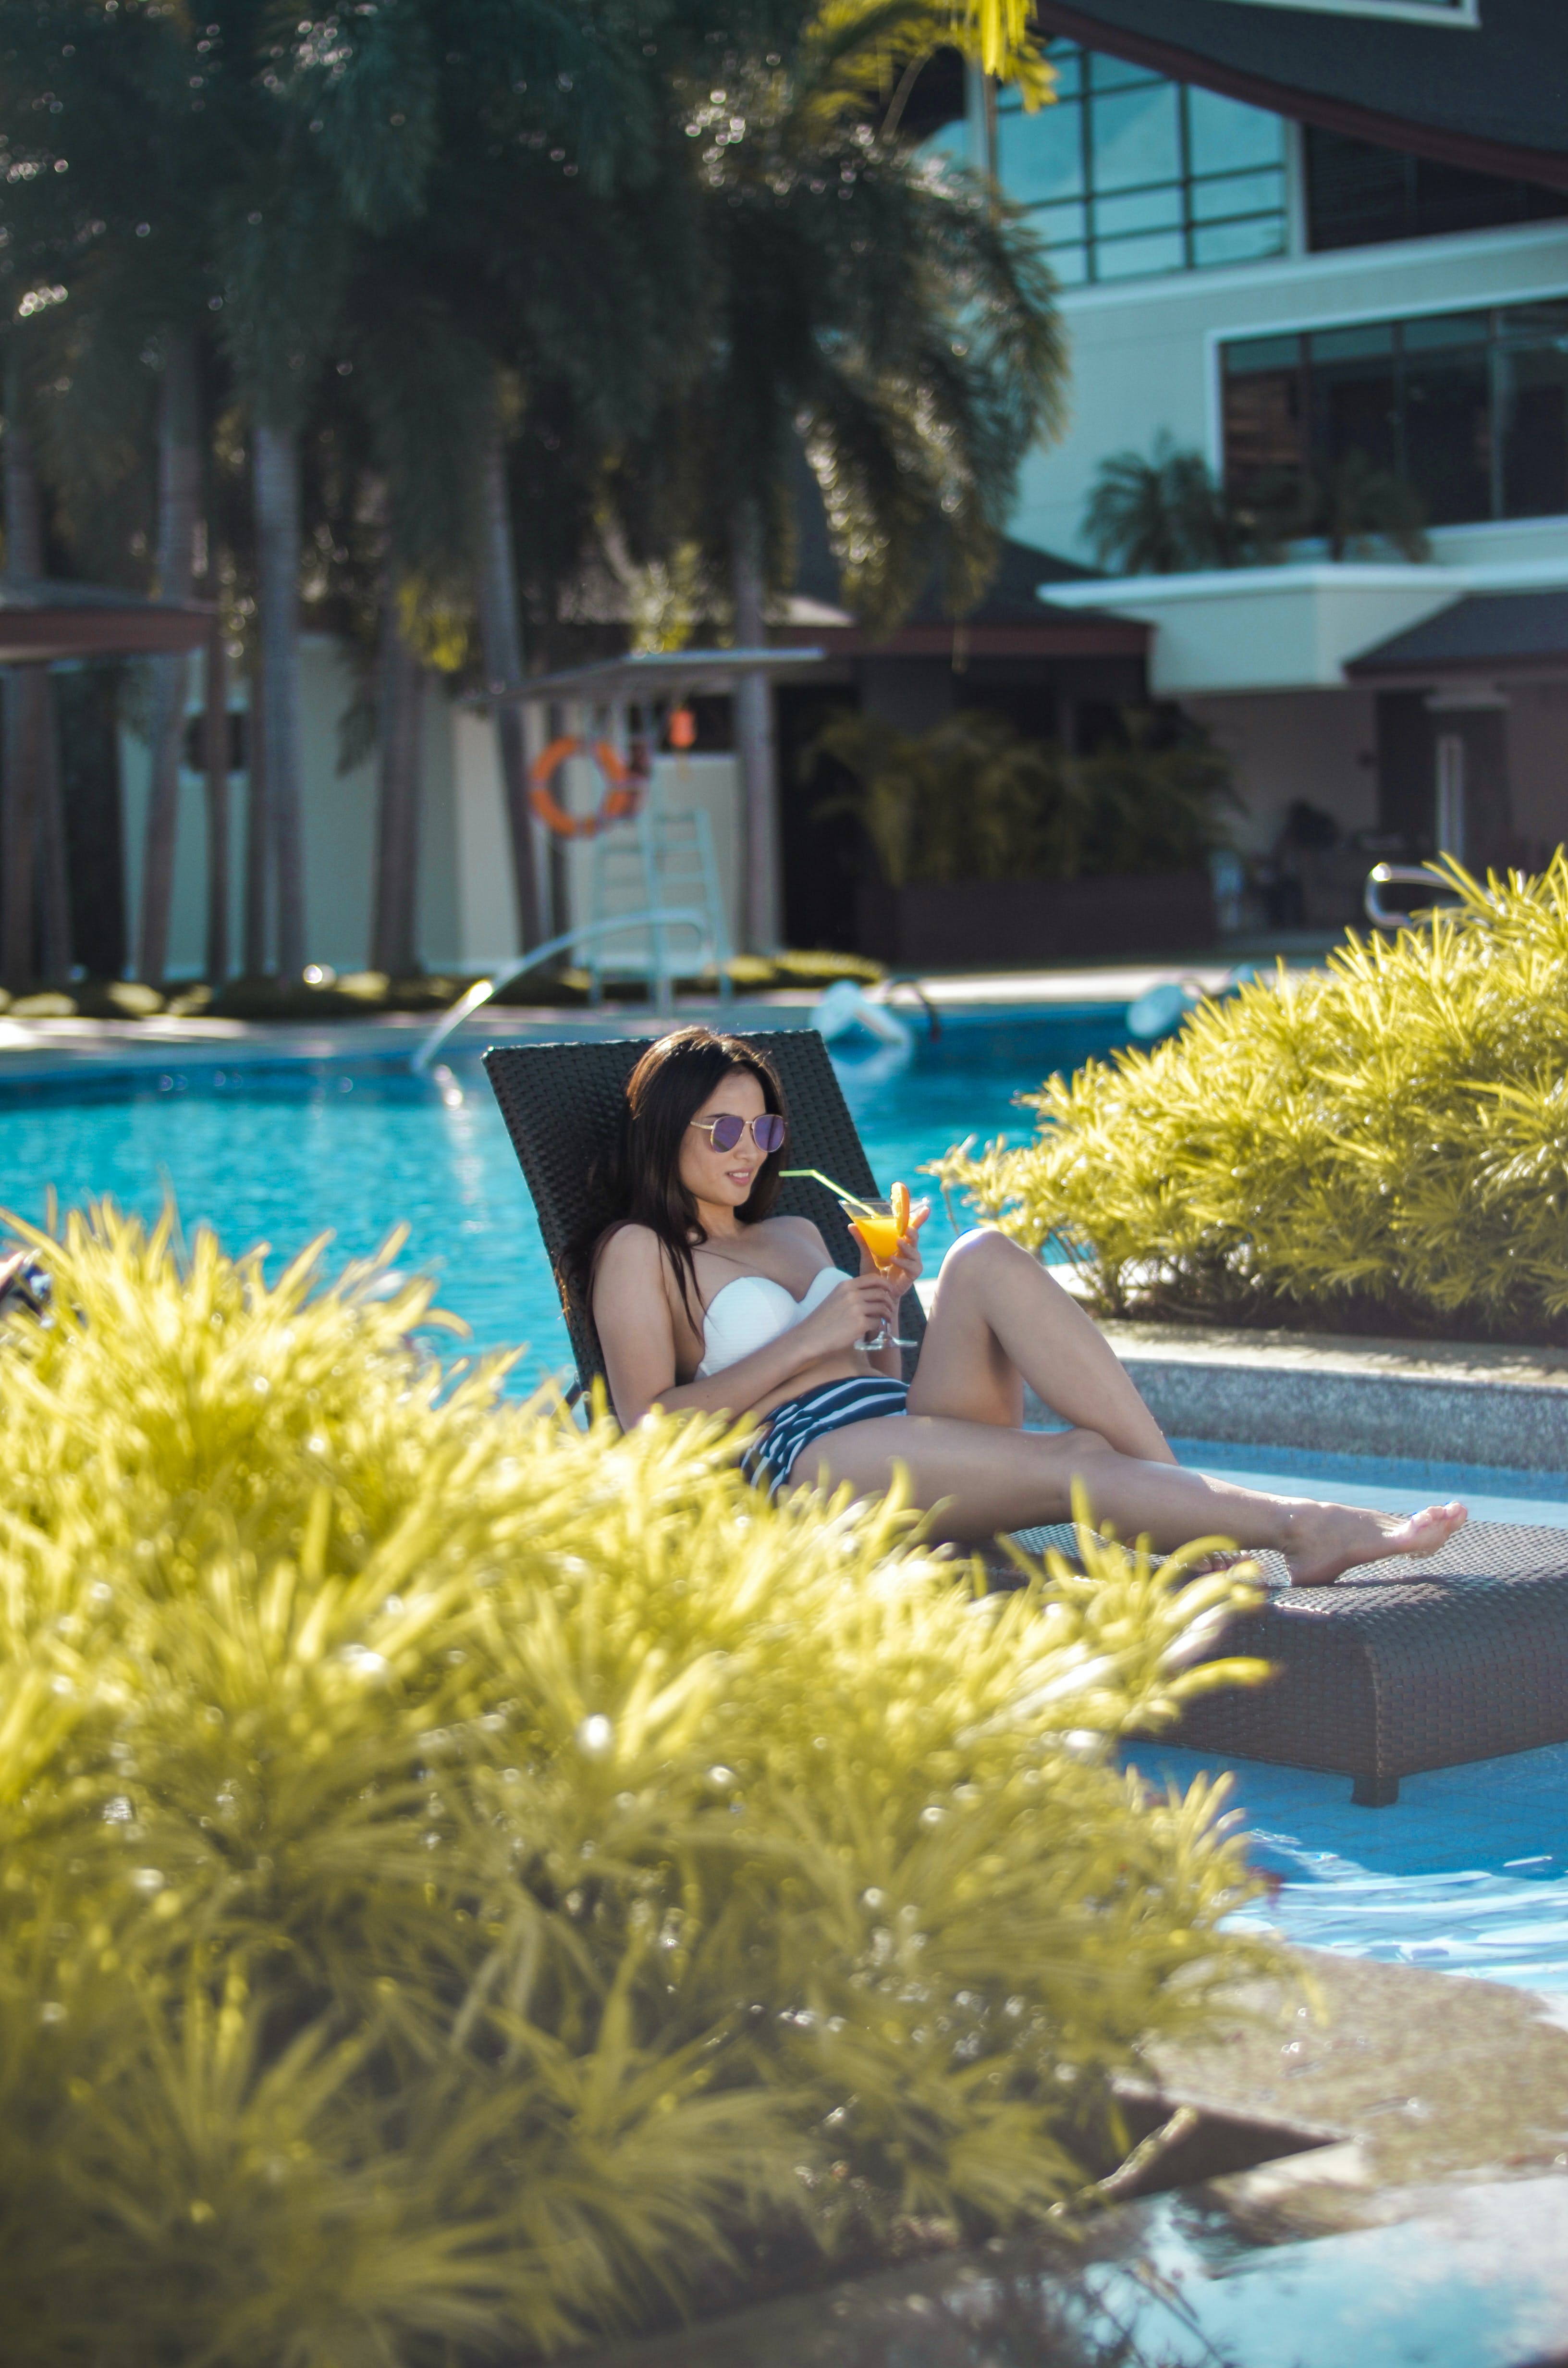 Woman Sitting on Outdoor Lounger Chair While Holding Drinking Glass